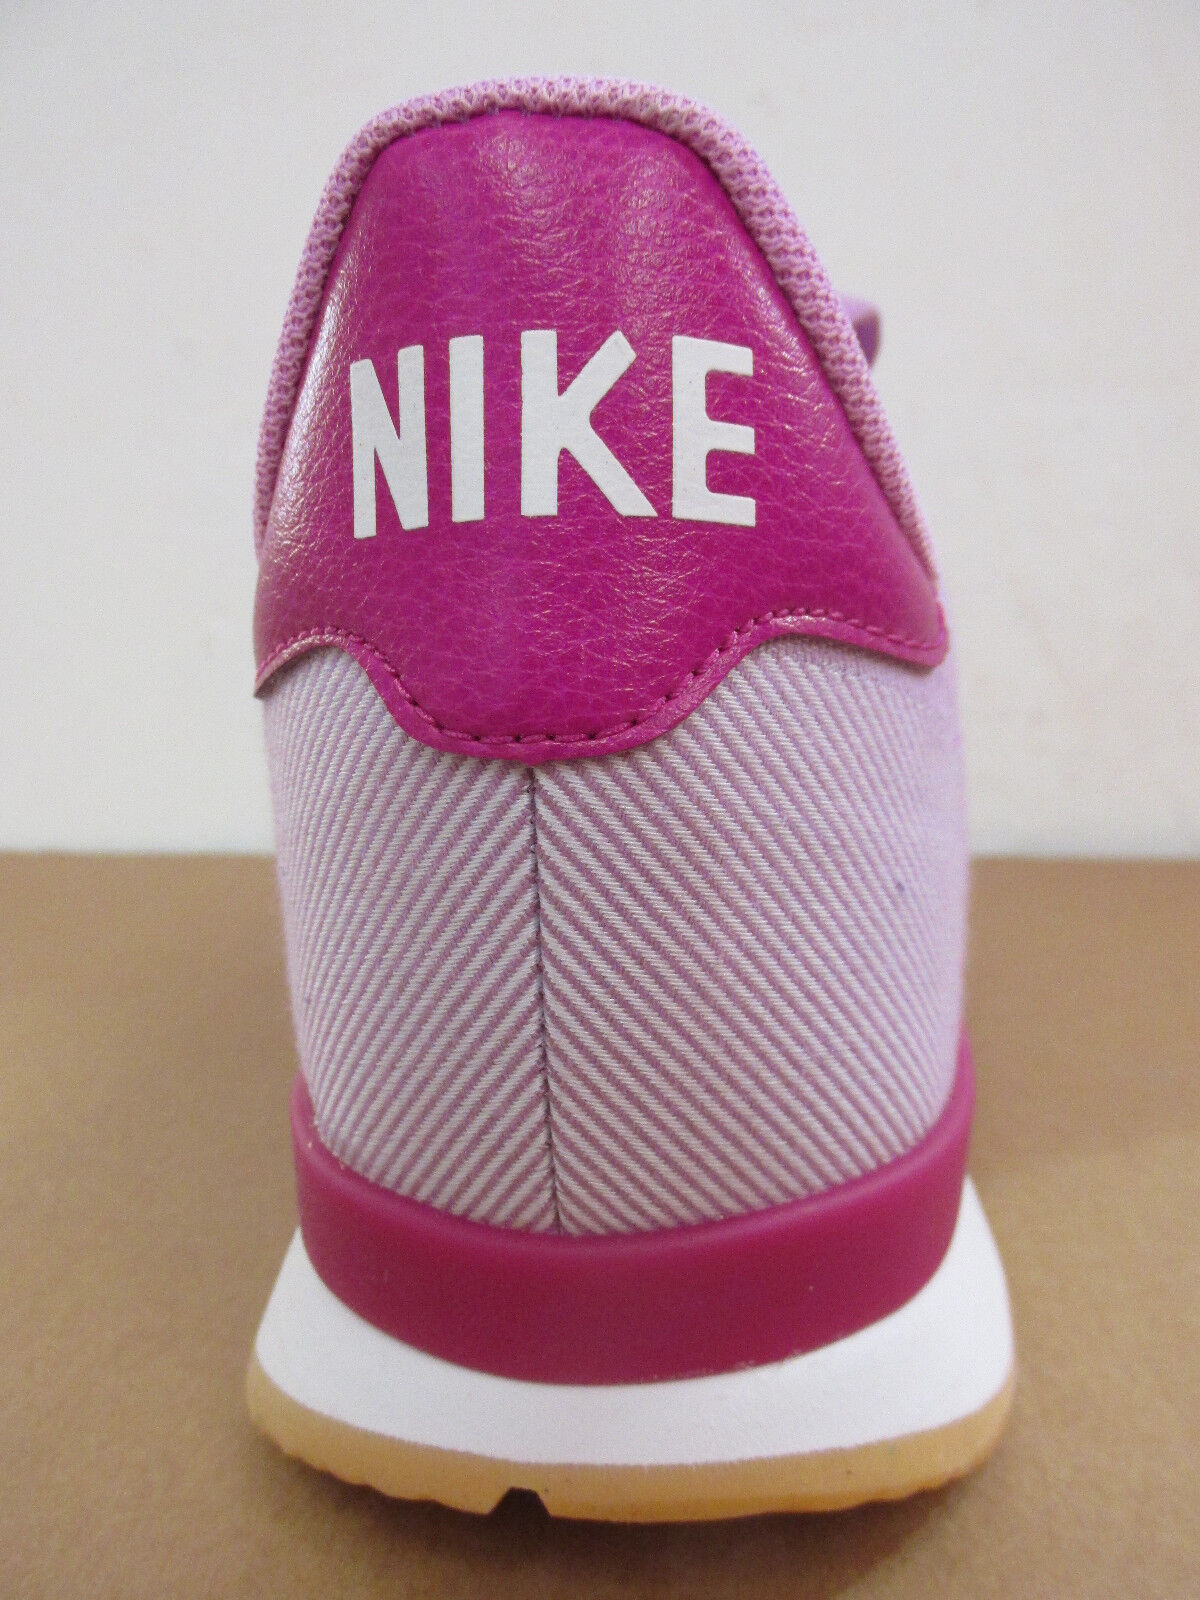 Nike Femmes Internationaliste Baskets Jcrd Baskets Internationaliste 705215 500 Baskets Enlèvement 679dd8